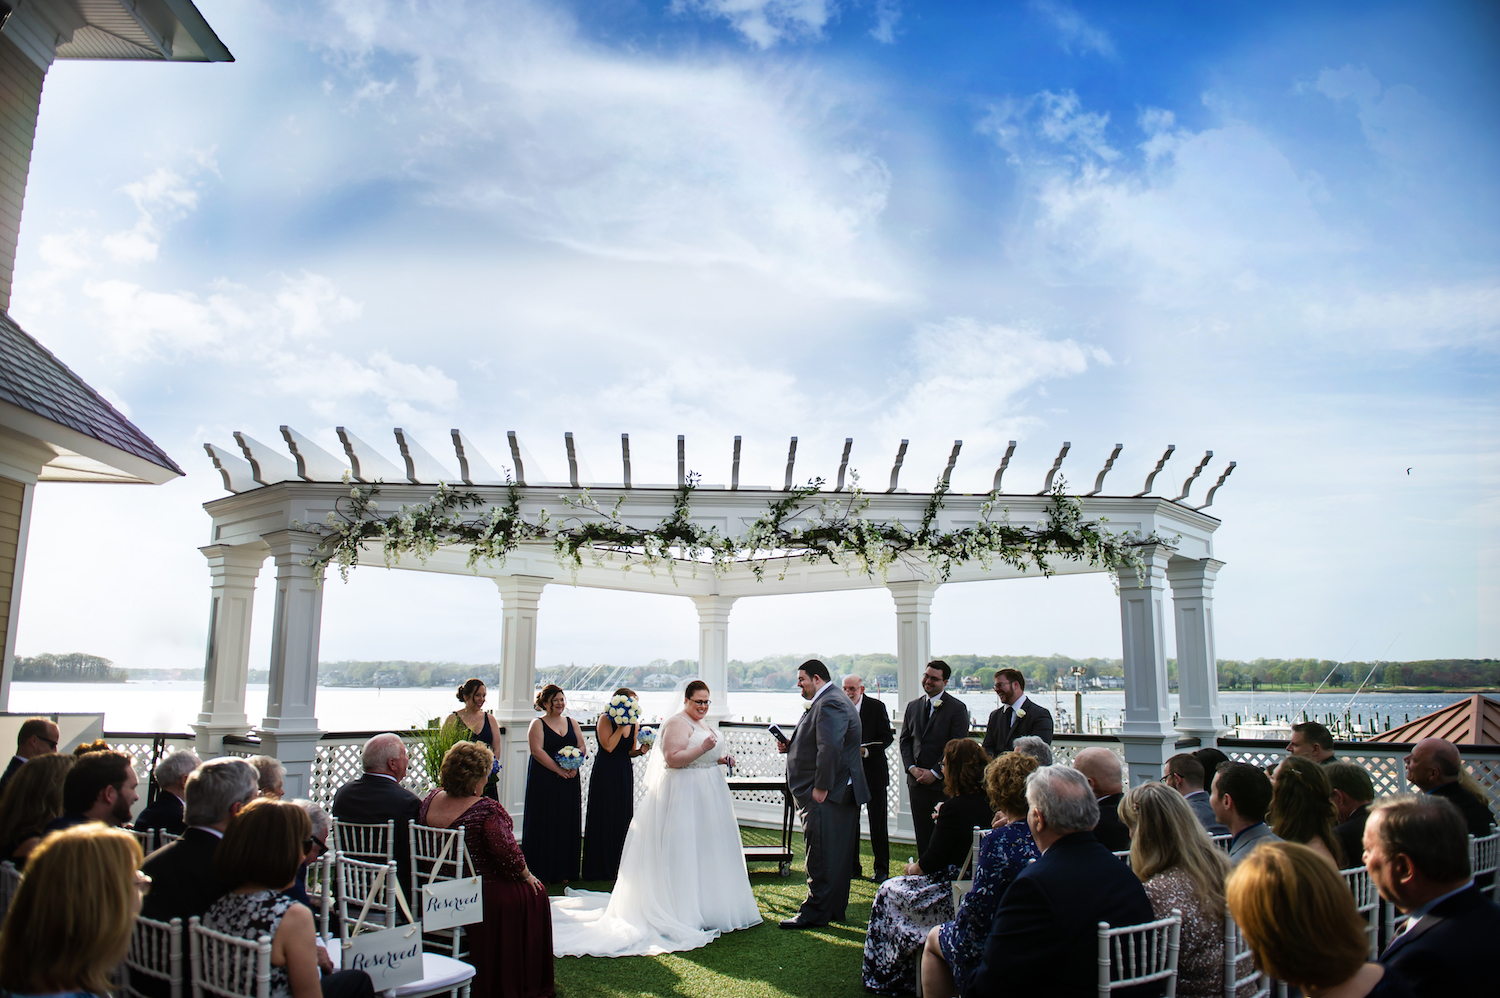 nj-wedding-photographers-alli&mickey-vows-altar-outdoor-ceremony